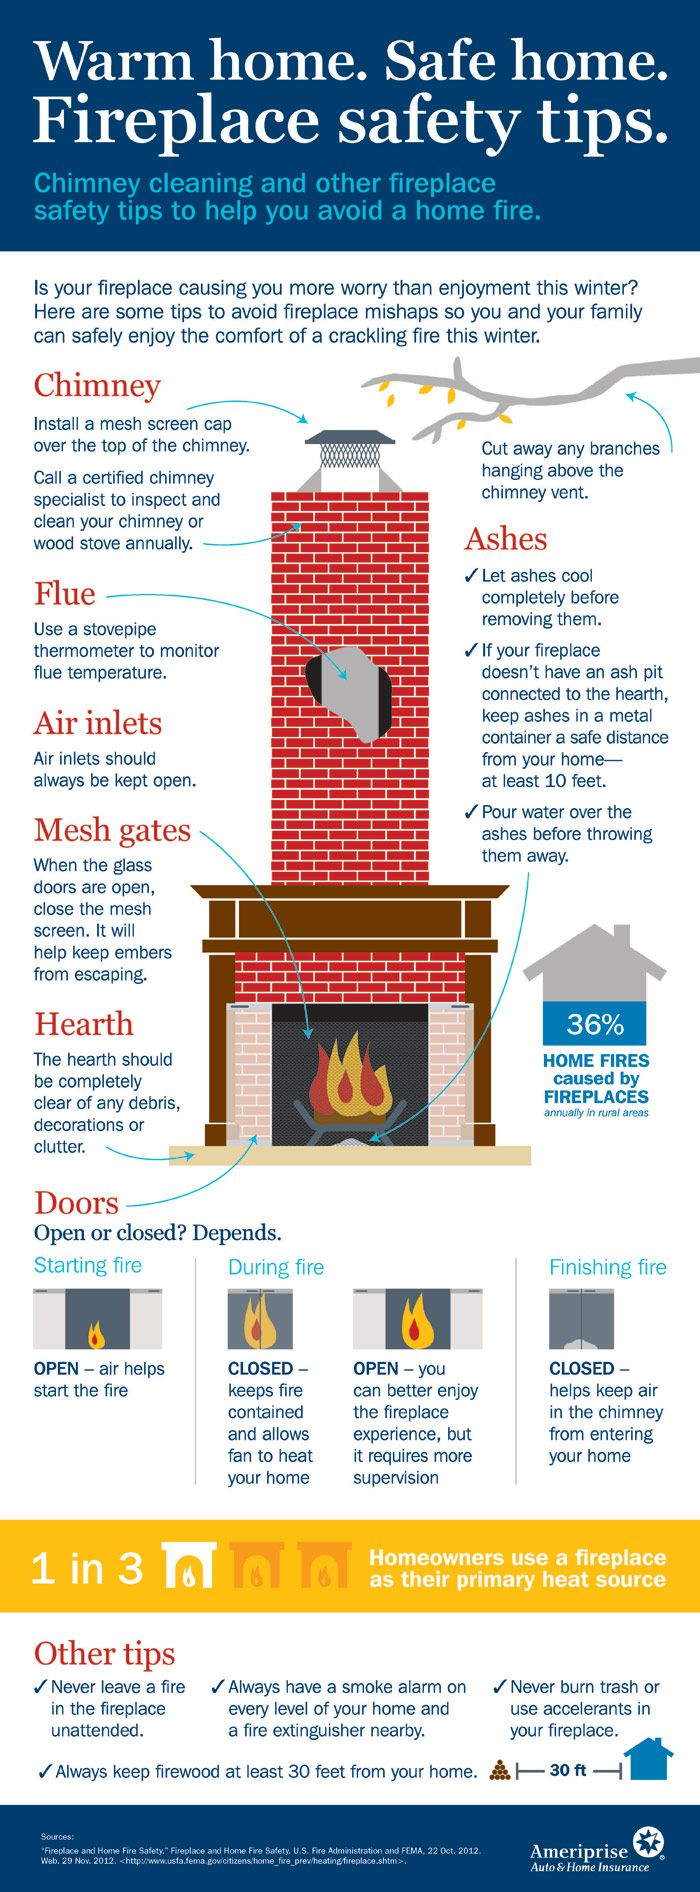 15 best Fireplace Safety Tips images on Pinterest | Safety tips, Fireplaces  and Chimney sweep